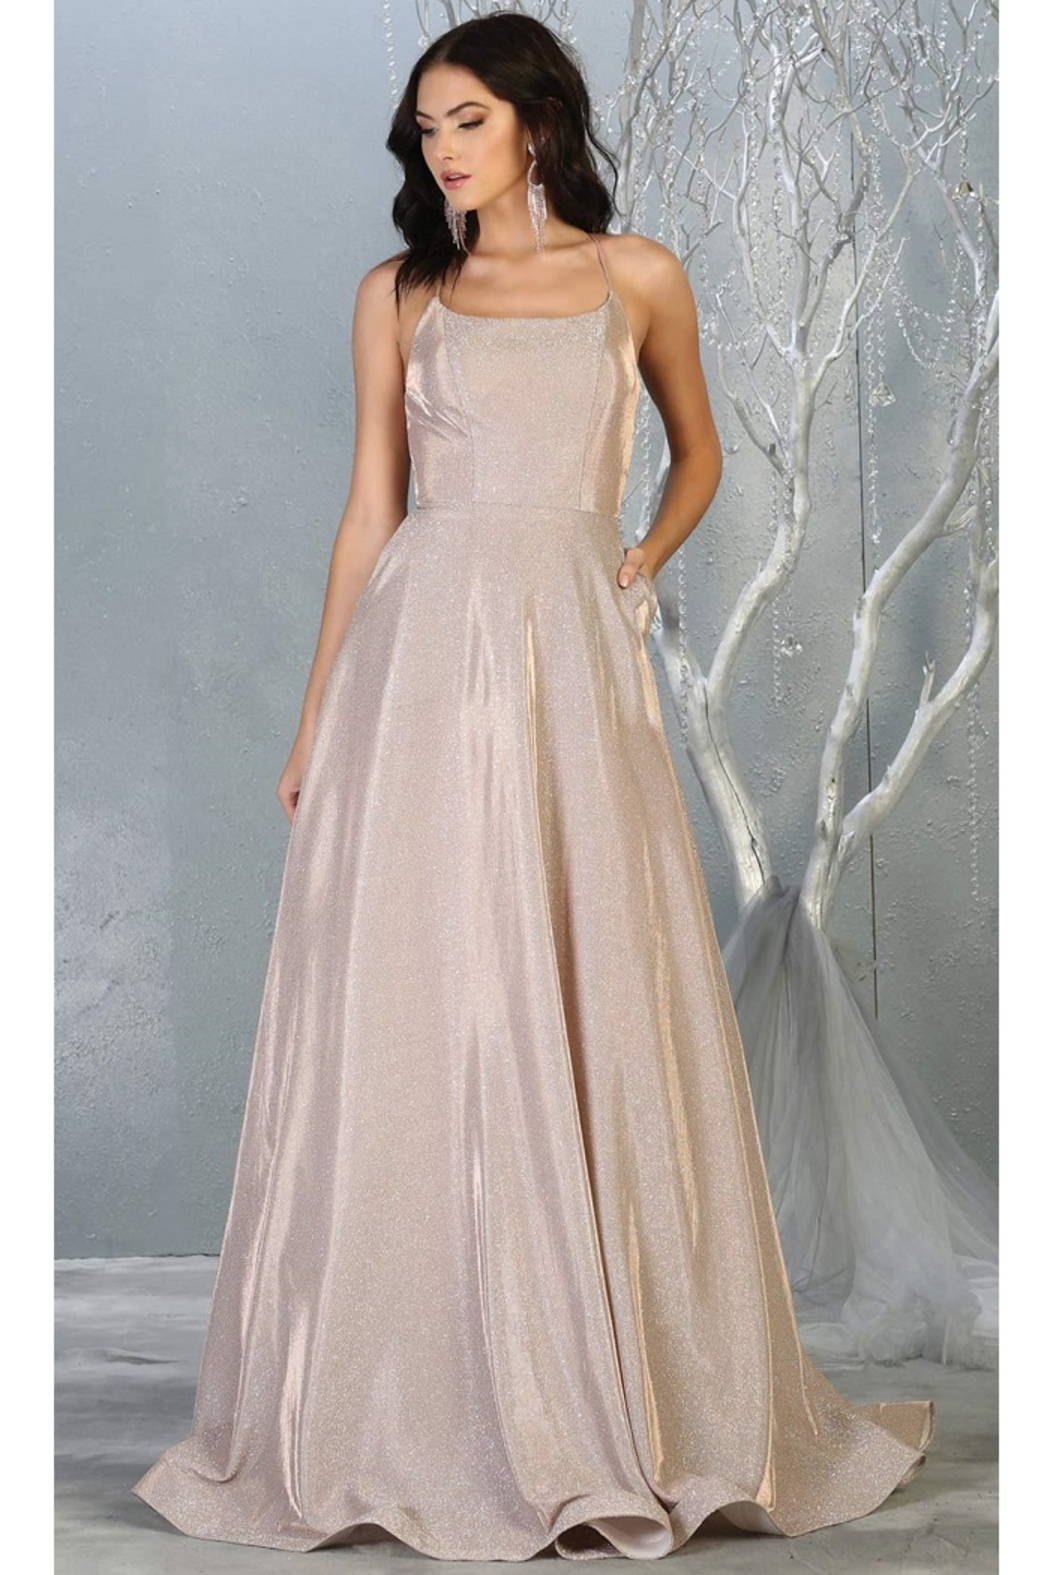 May Queen  Rose Gold Metallic A-Line Formal Long Dress - Main Image